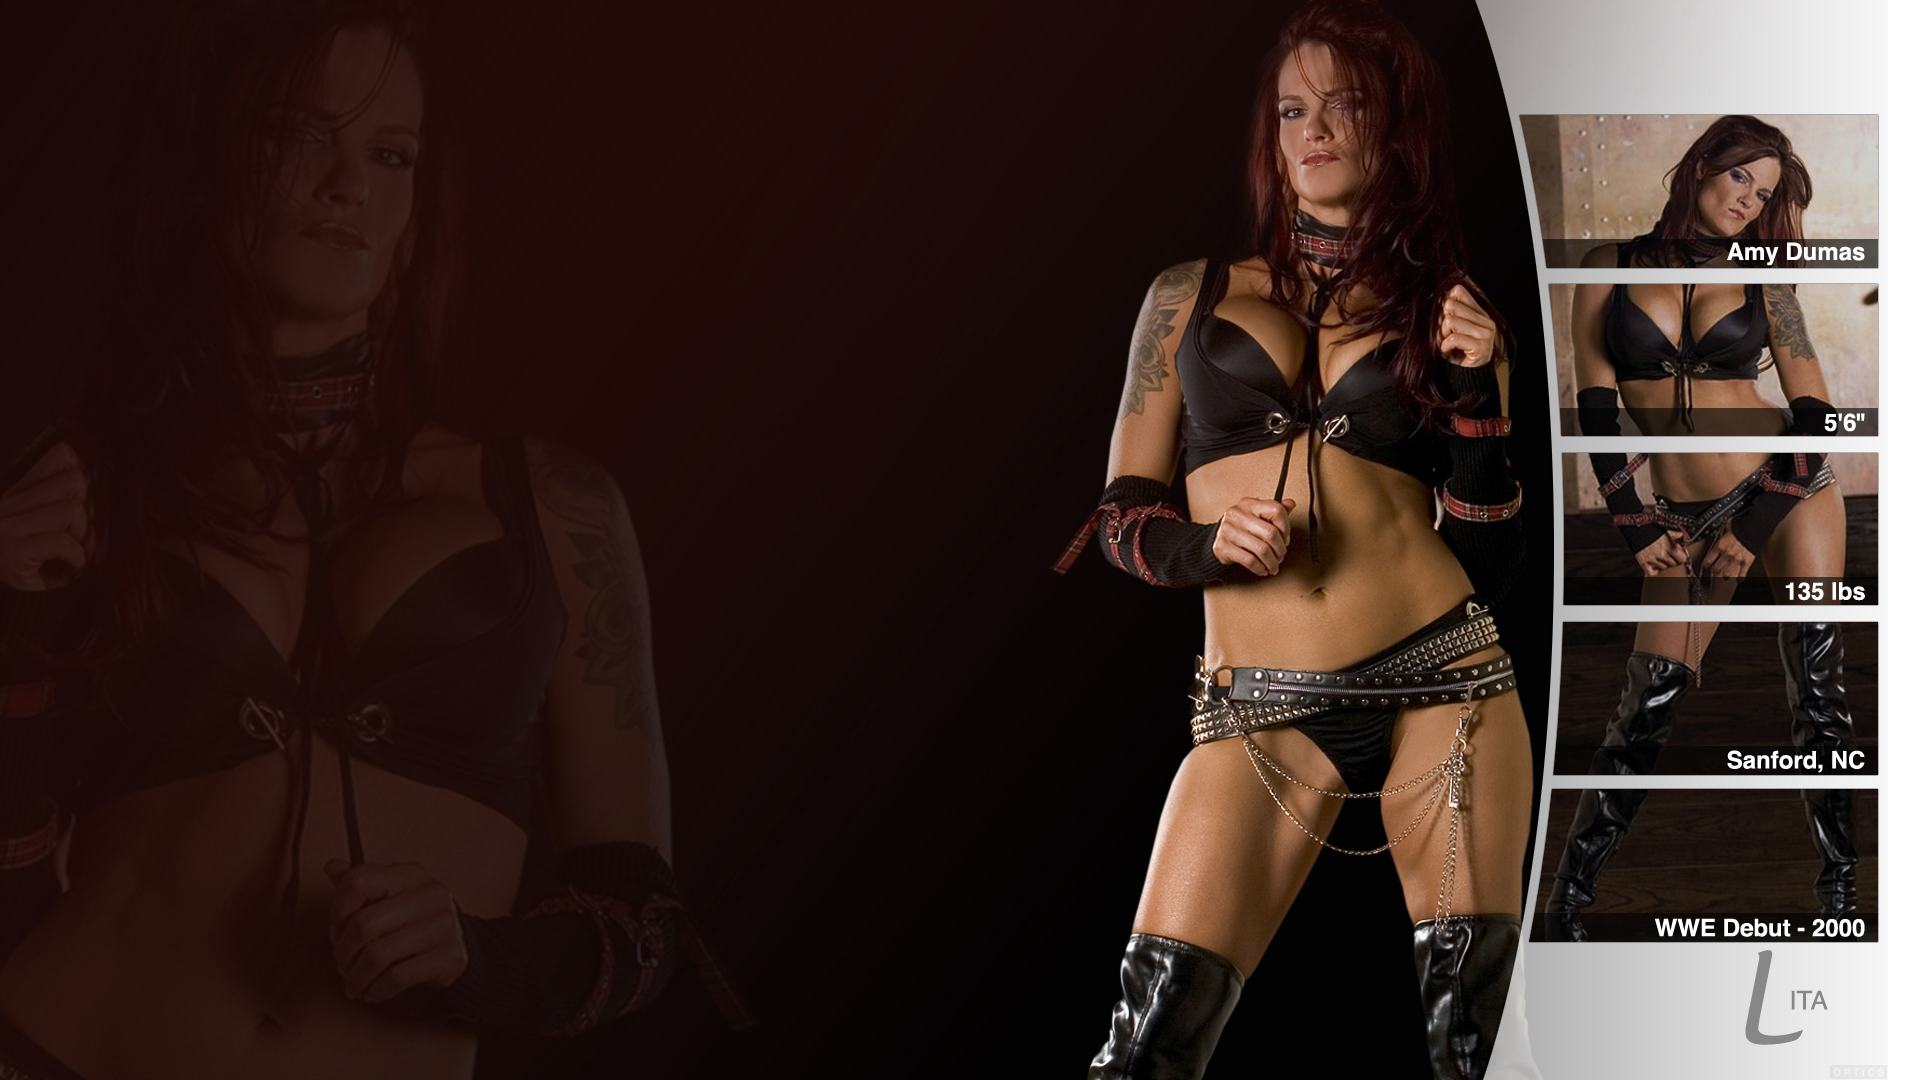 Lita Wwe Wallpaper By Pt C Fan Art Movies Tv